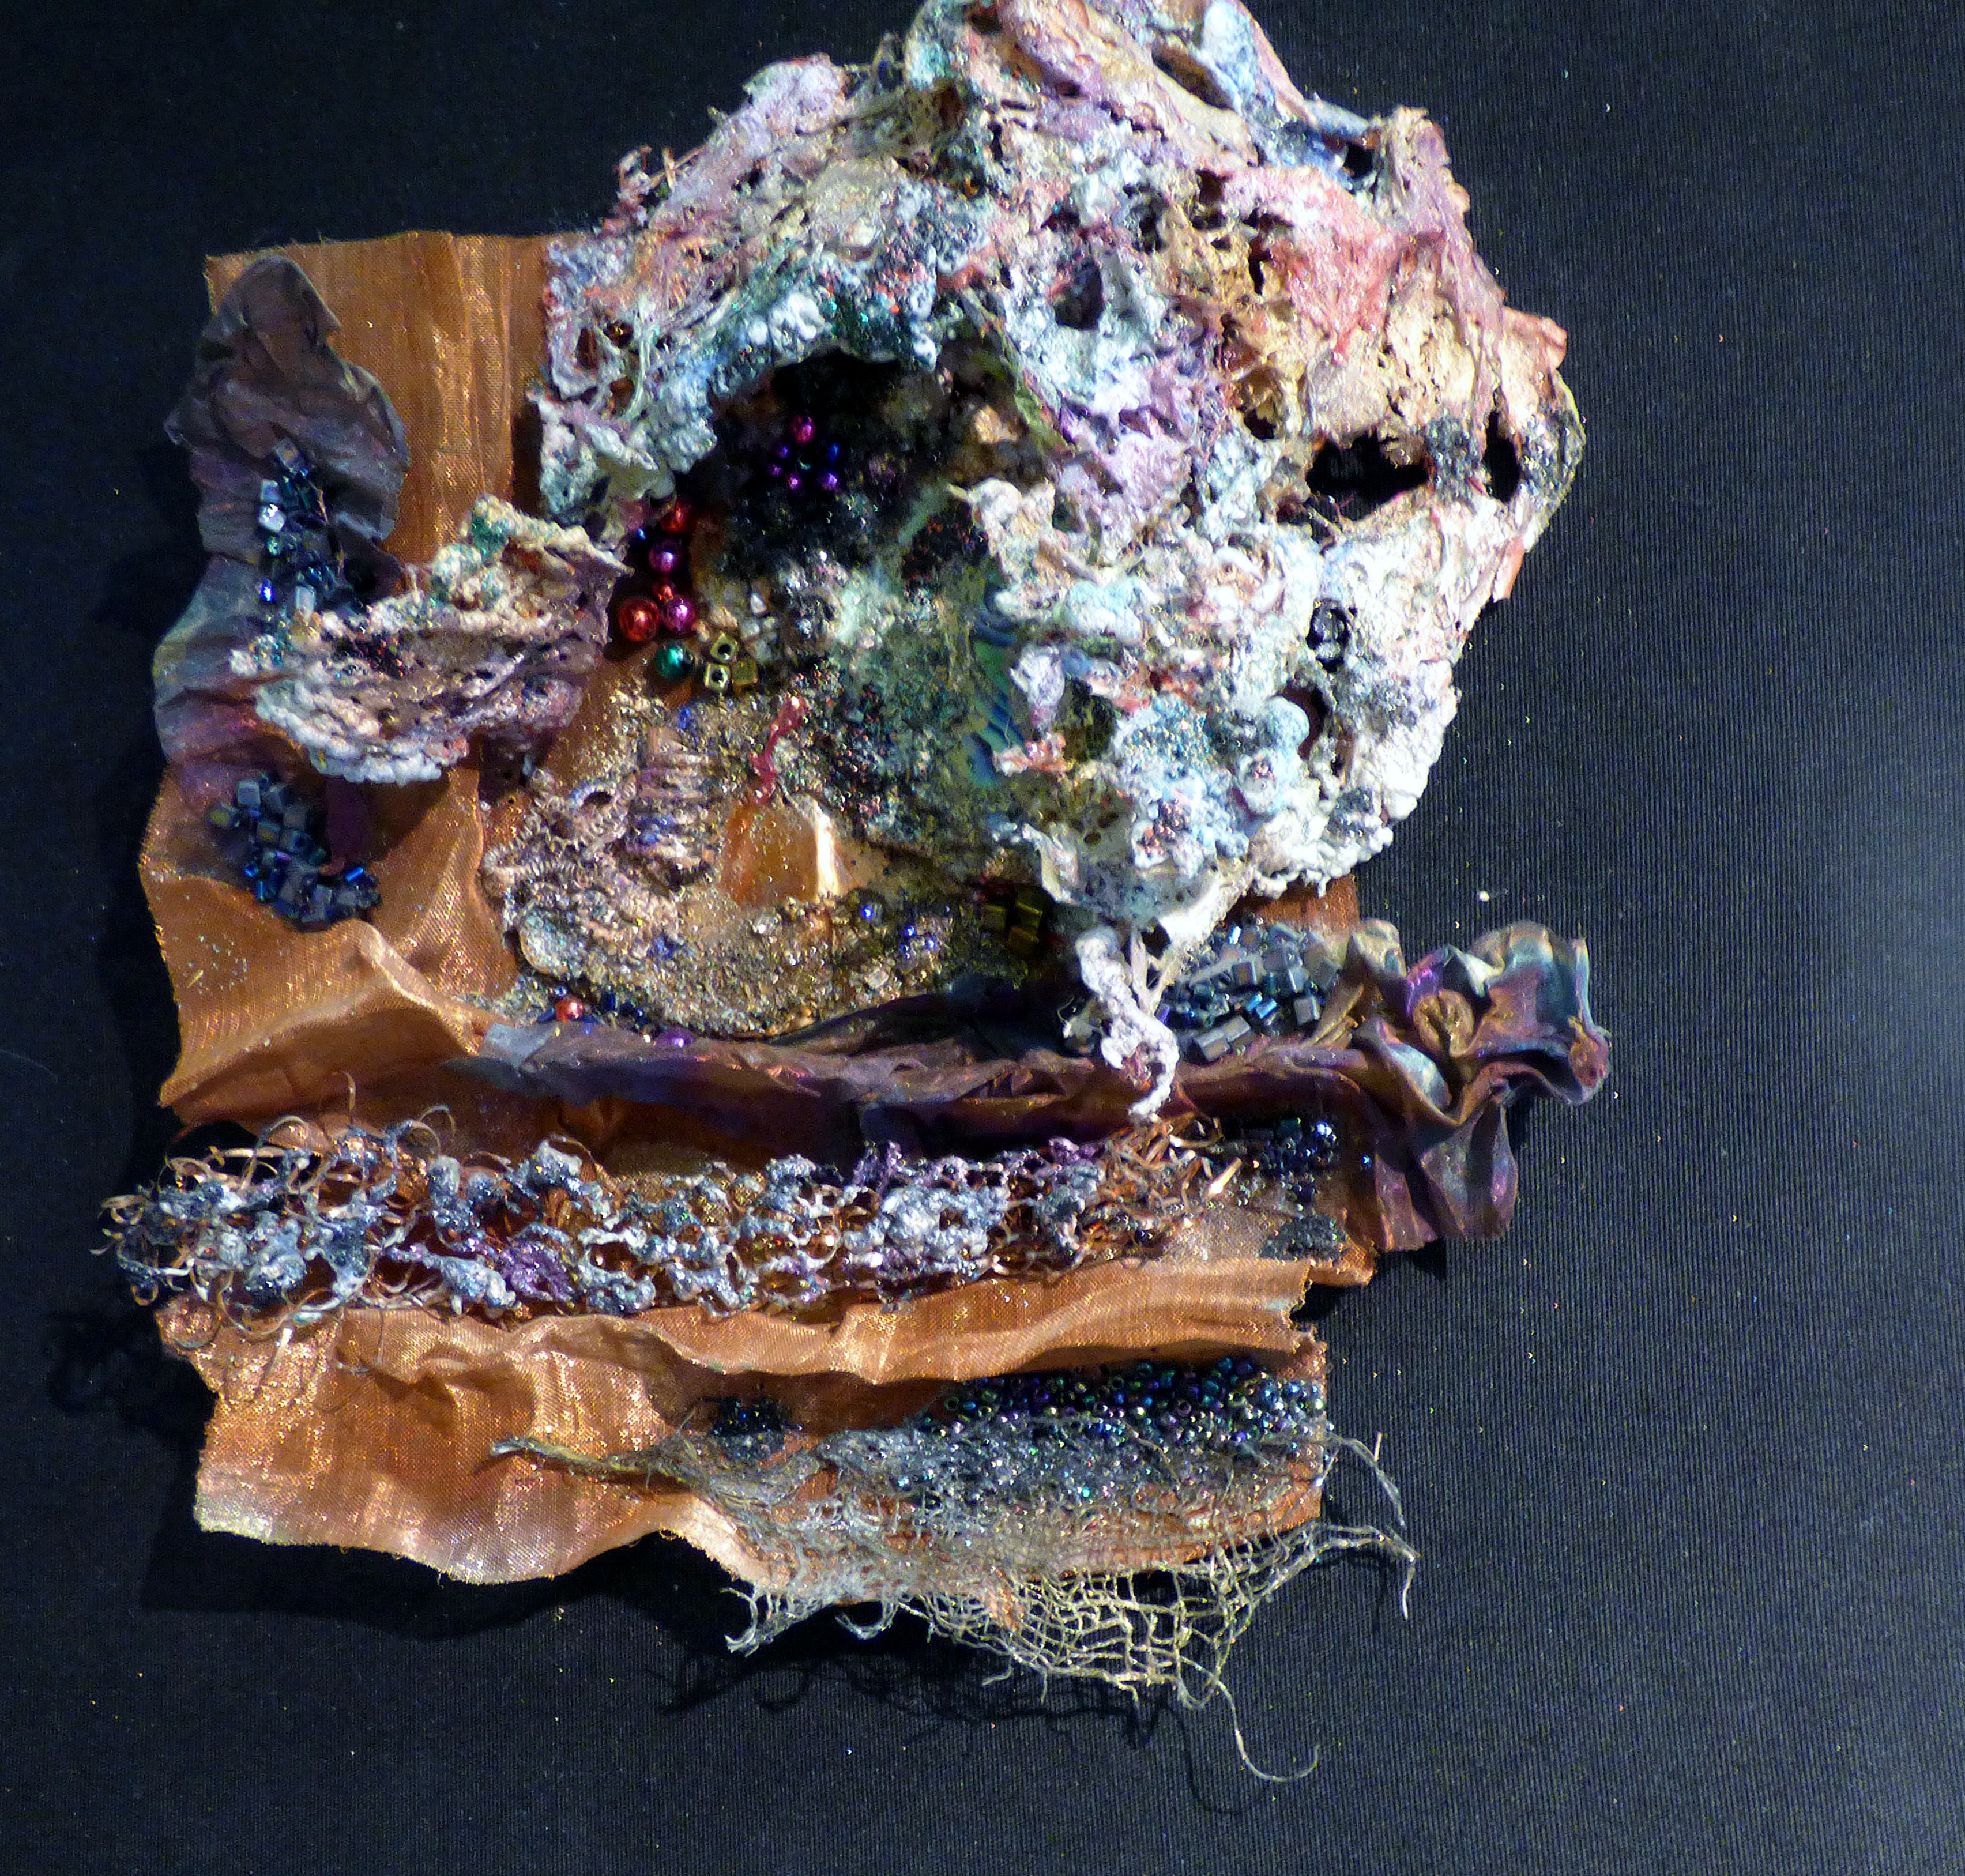 CONCRETION by Joy Madden, mixed media inspired by animal life clinging to underwater metal objects